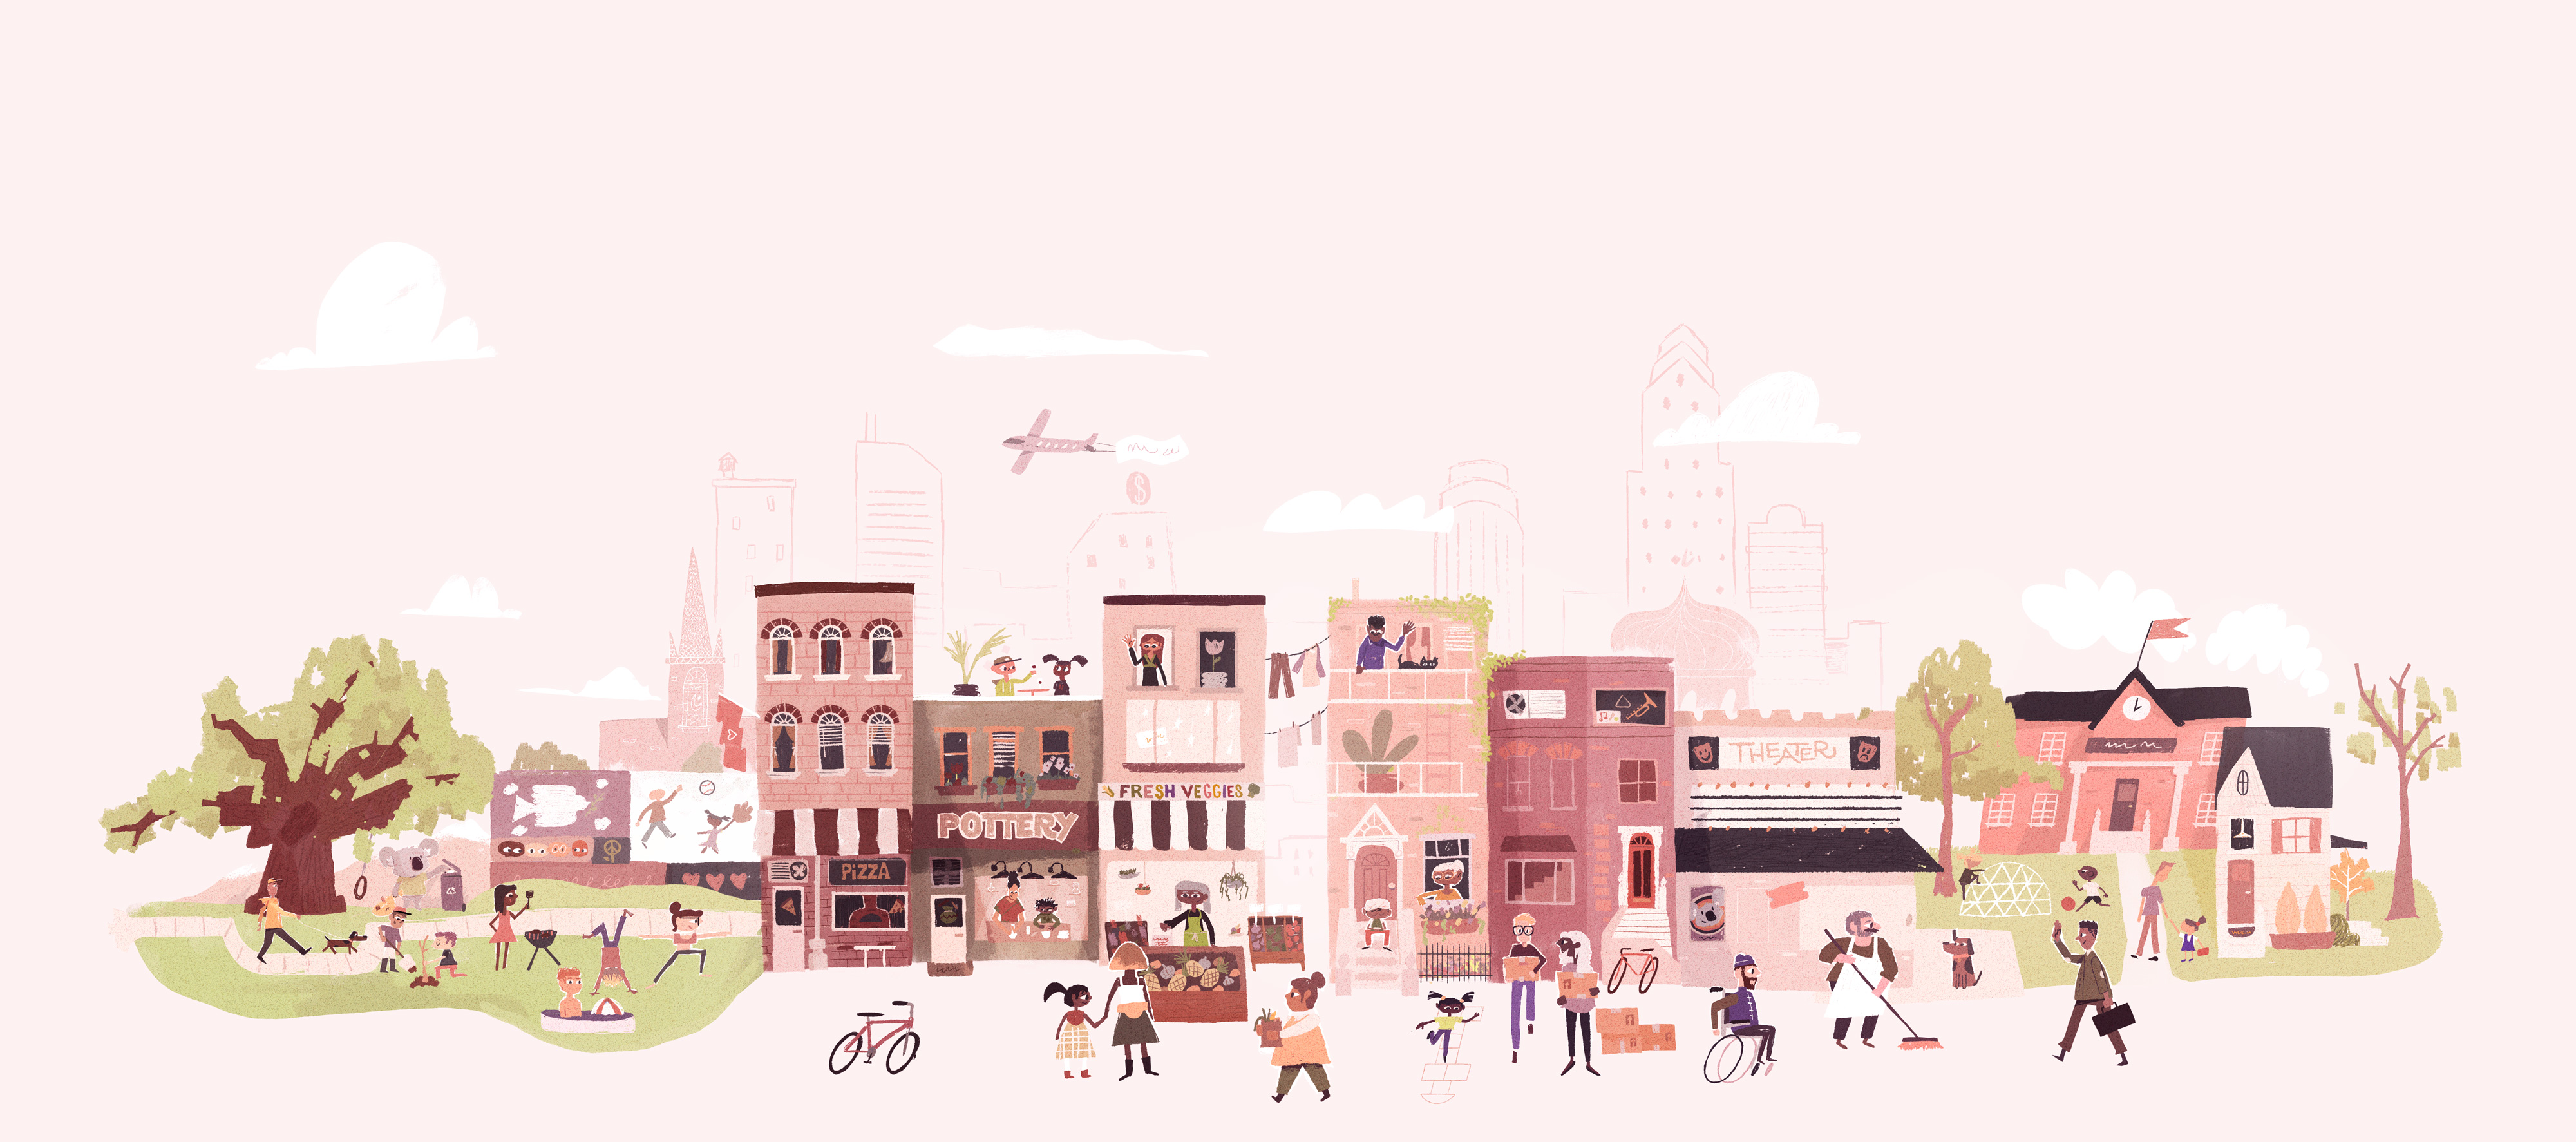 Happy People in the Community Illustration